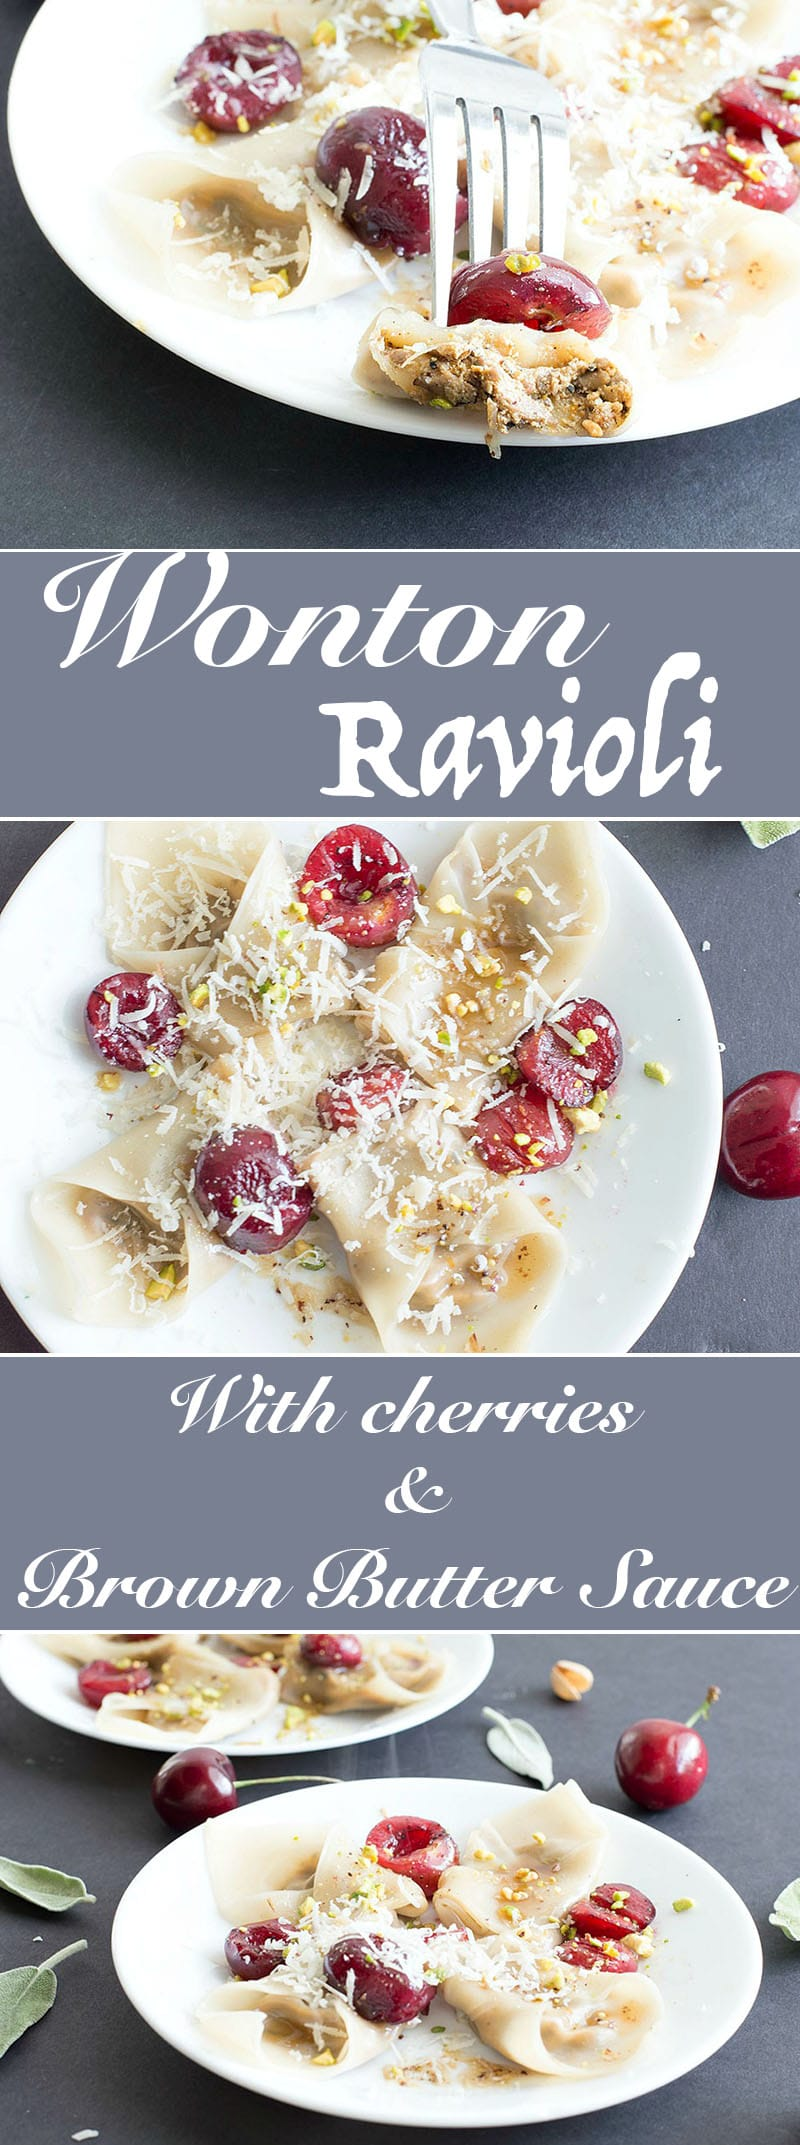 This simple and delicious wonton ravioli is the perfect dinner idea for the whole family to enjoy. Made with fresh mushrooms, bell peppers, shallots and amaretti cookies. Even vegans can find a way to enjoy this recipe